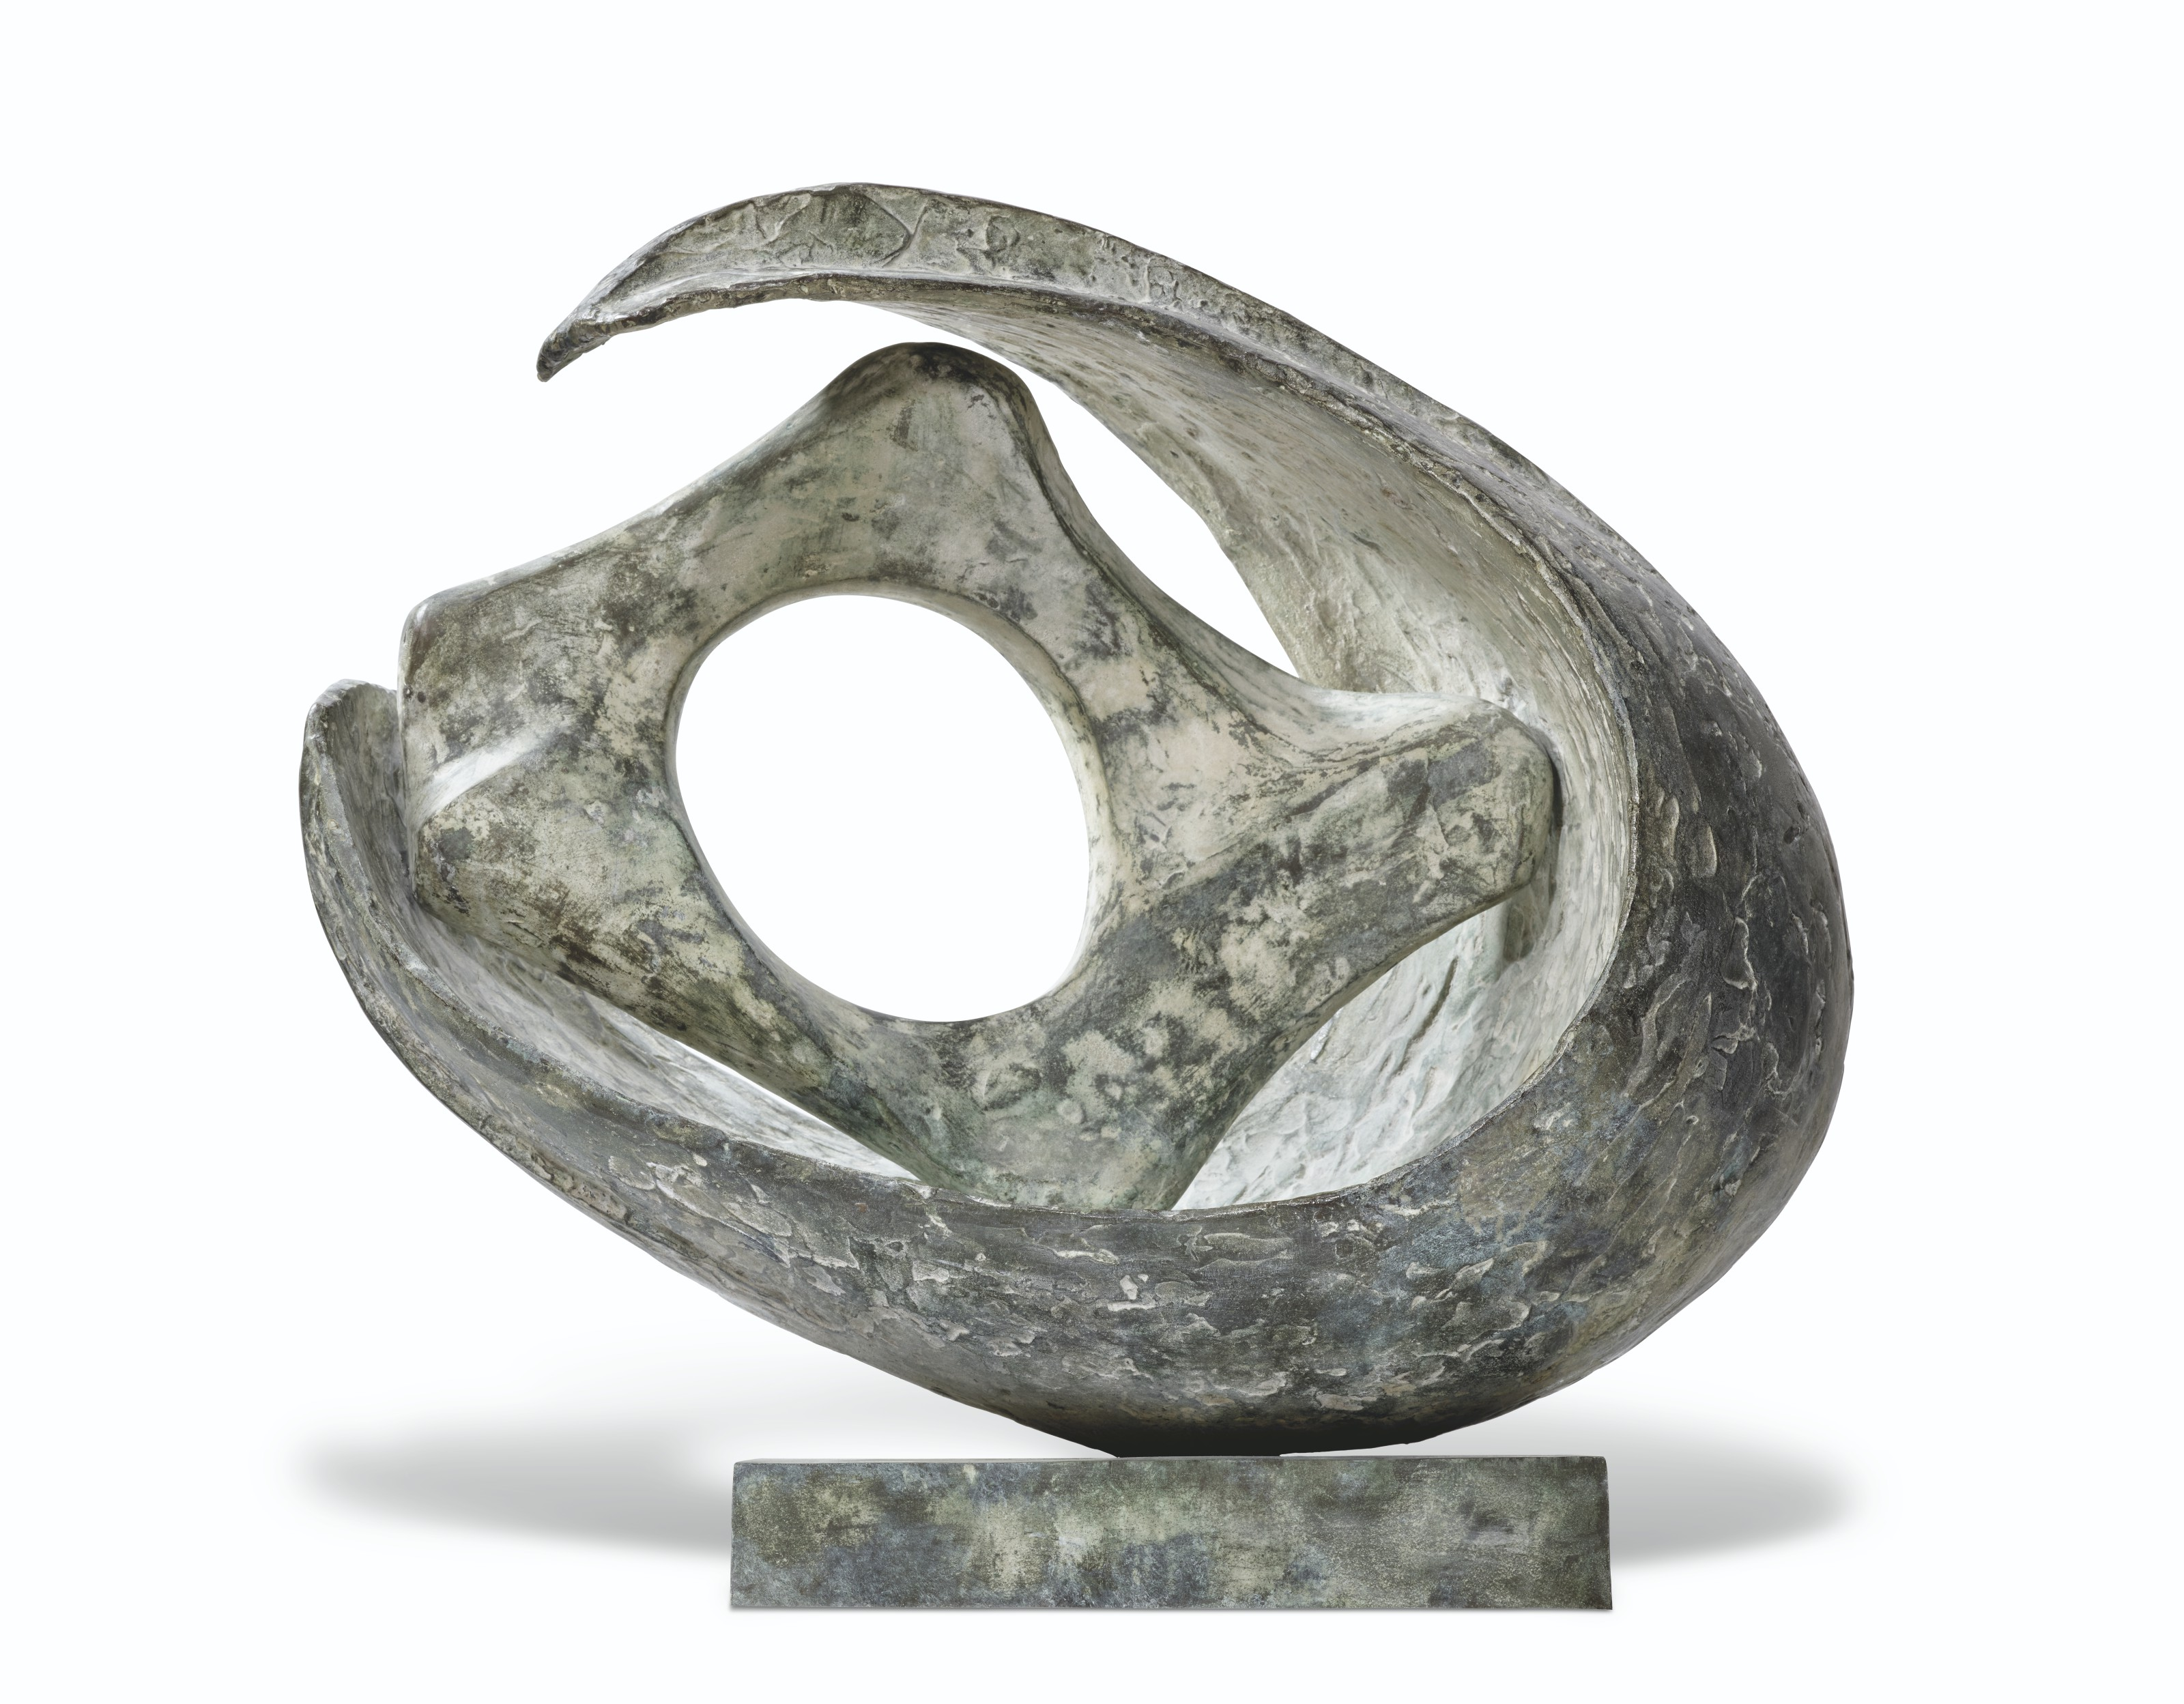 Dame Barbara Hepworth (1903-1975), Curved form with inner form (anima), 1959. Bronze with a green patina.28  in (71  cm) wide. Estimate £300,000-500,000. Offered inModern British and Irish Art Evening Saleon 20 October 2021 at Christie's in London